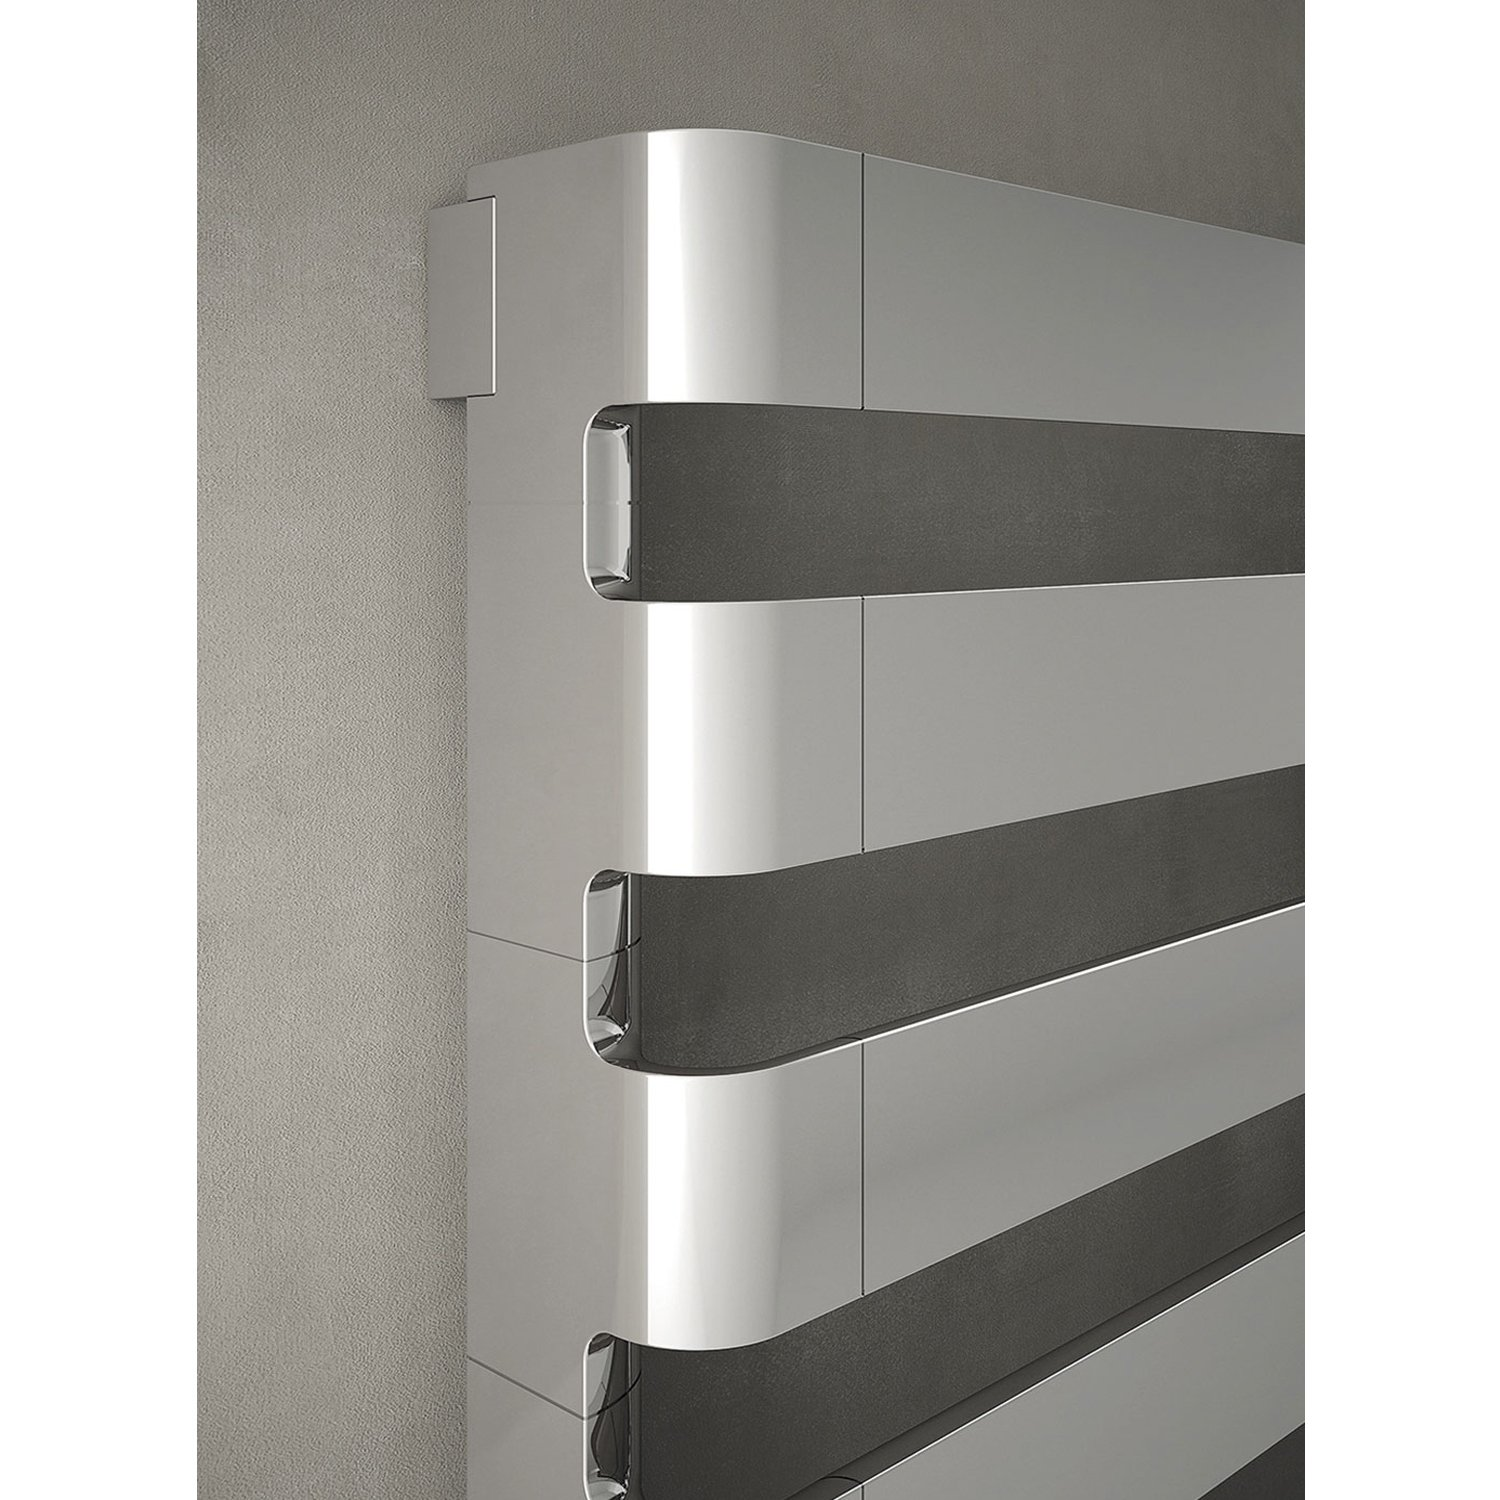 TRC BDO Step Heated Towel Rail 310mm H x 1500mm W - Chrome